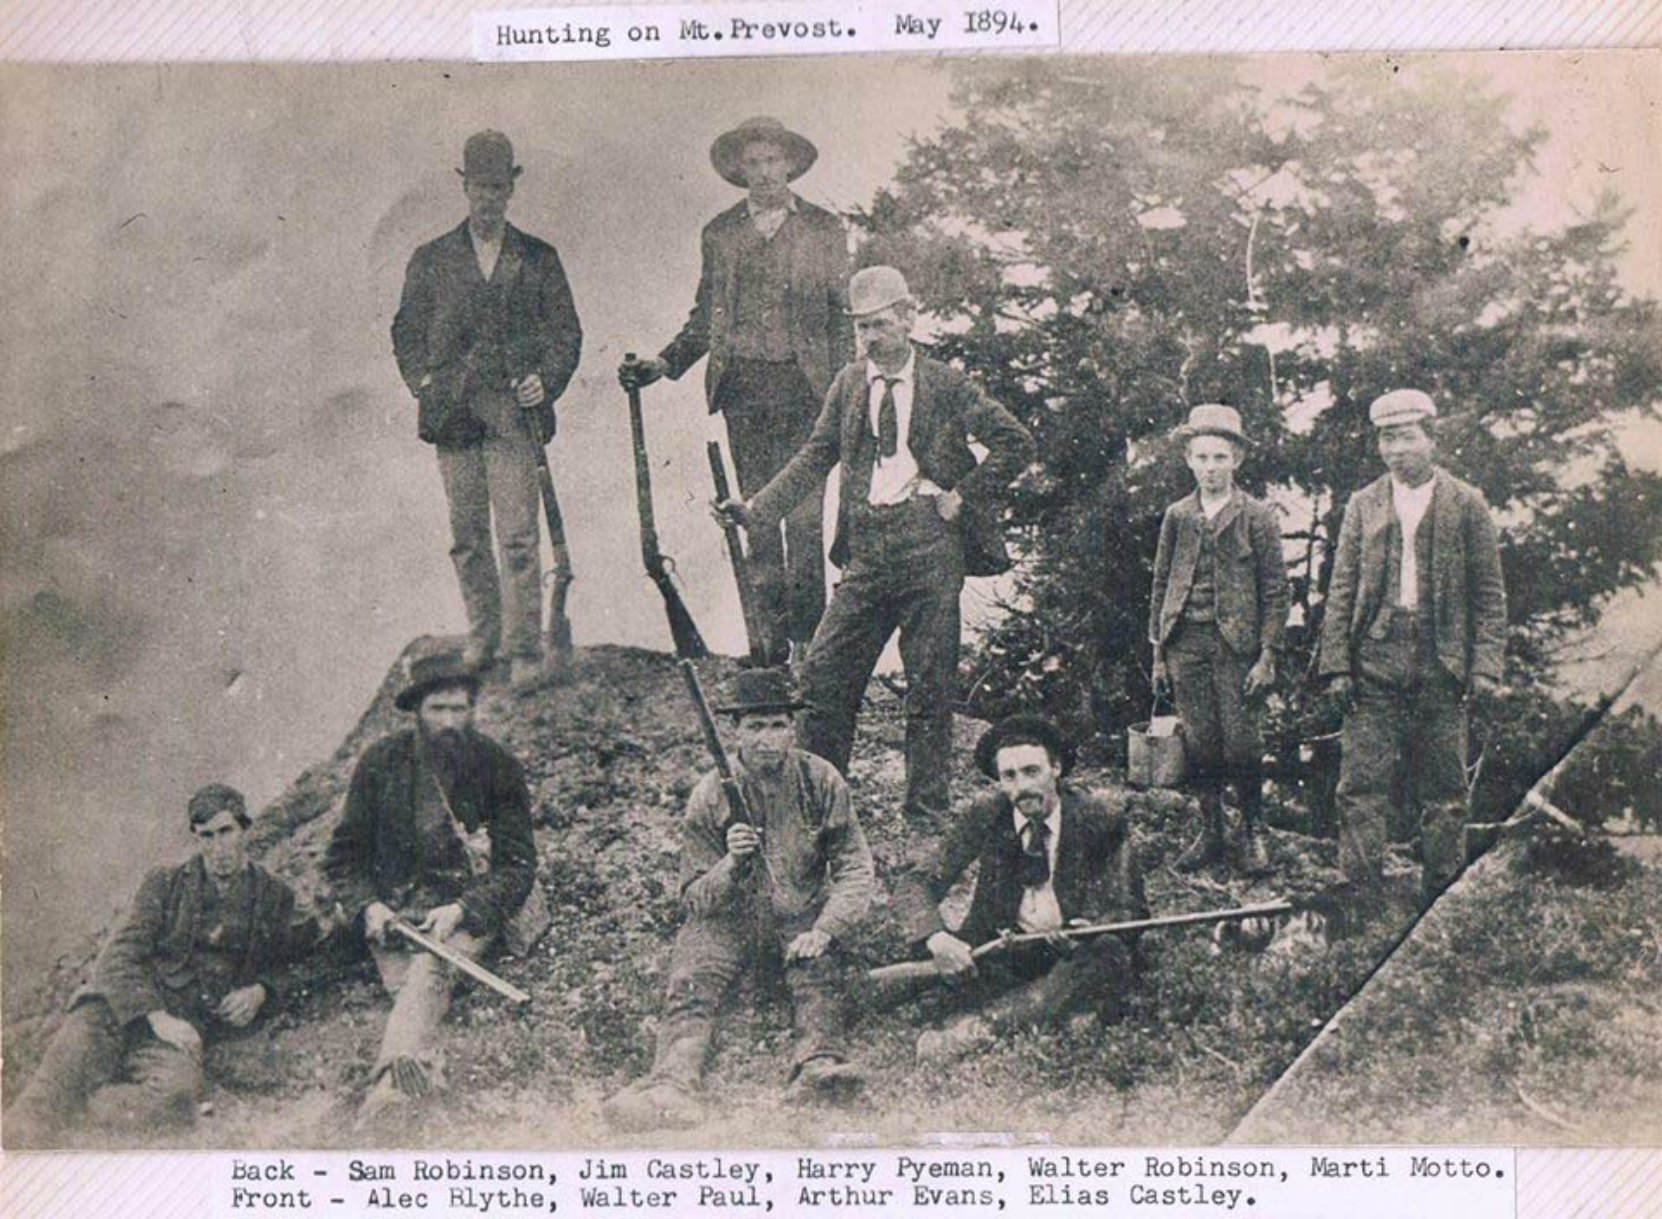 Temple Lodge charter member Samuel Robinson as part of a hunting expedition on Mt. Prevost, north of Duncan. (photo courtesy of Sylvia J. Dyer, used with permission)